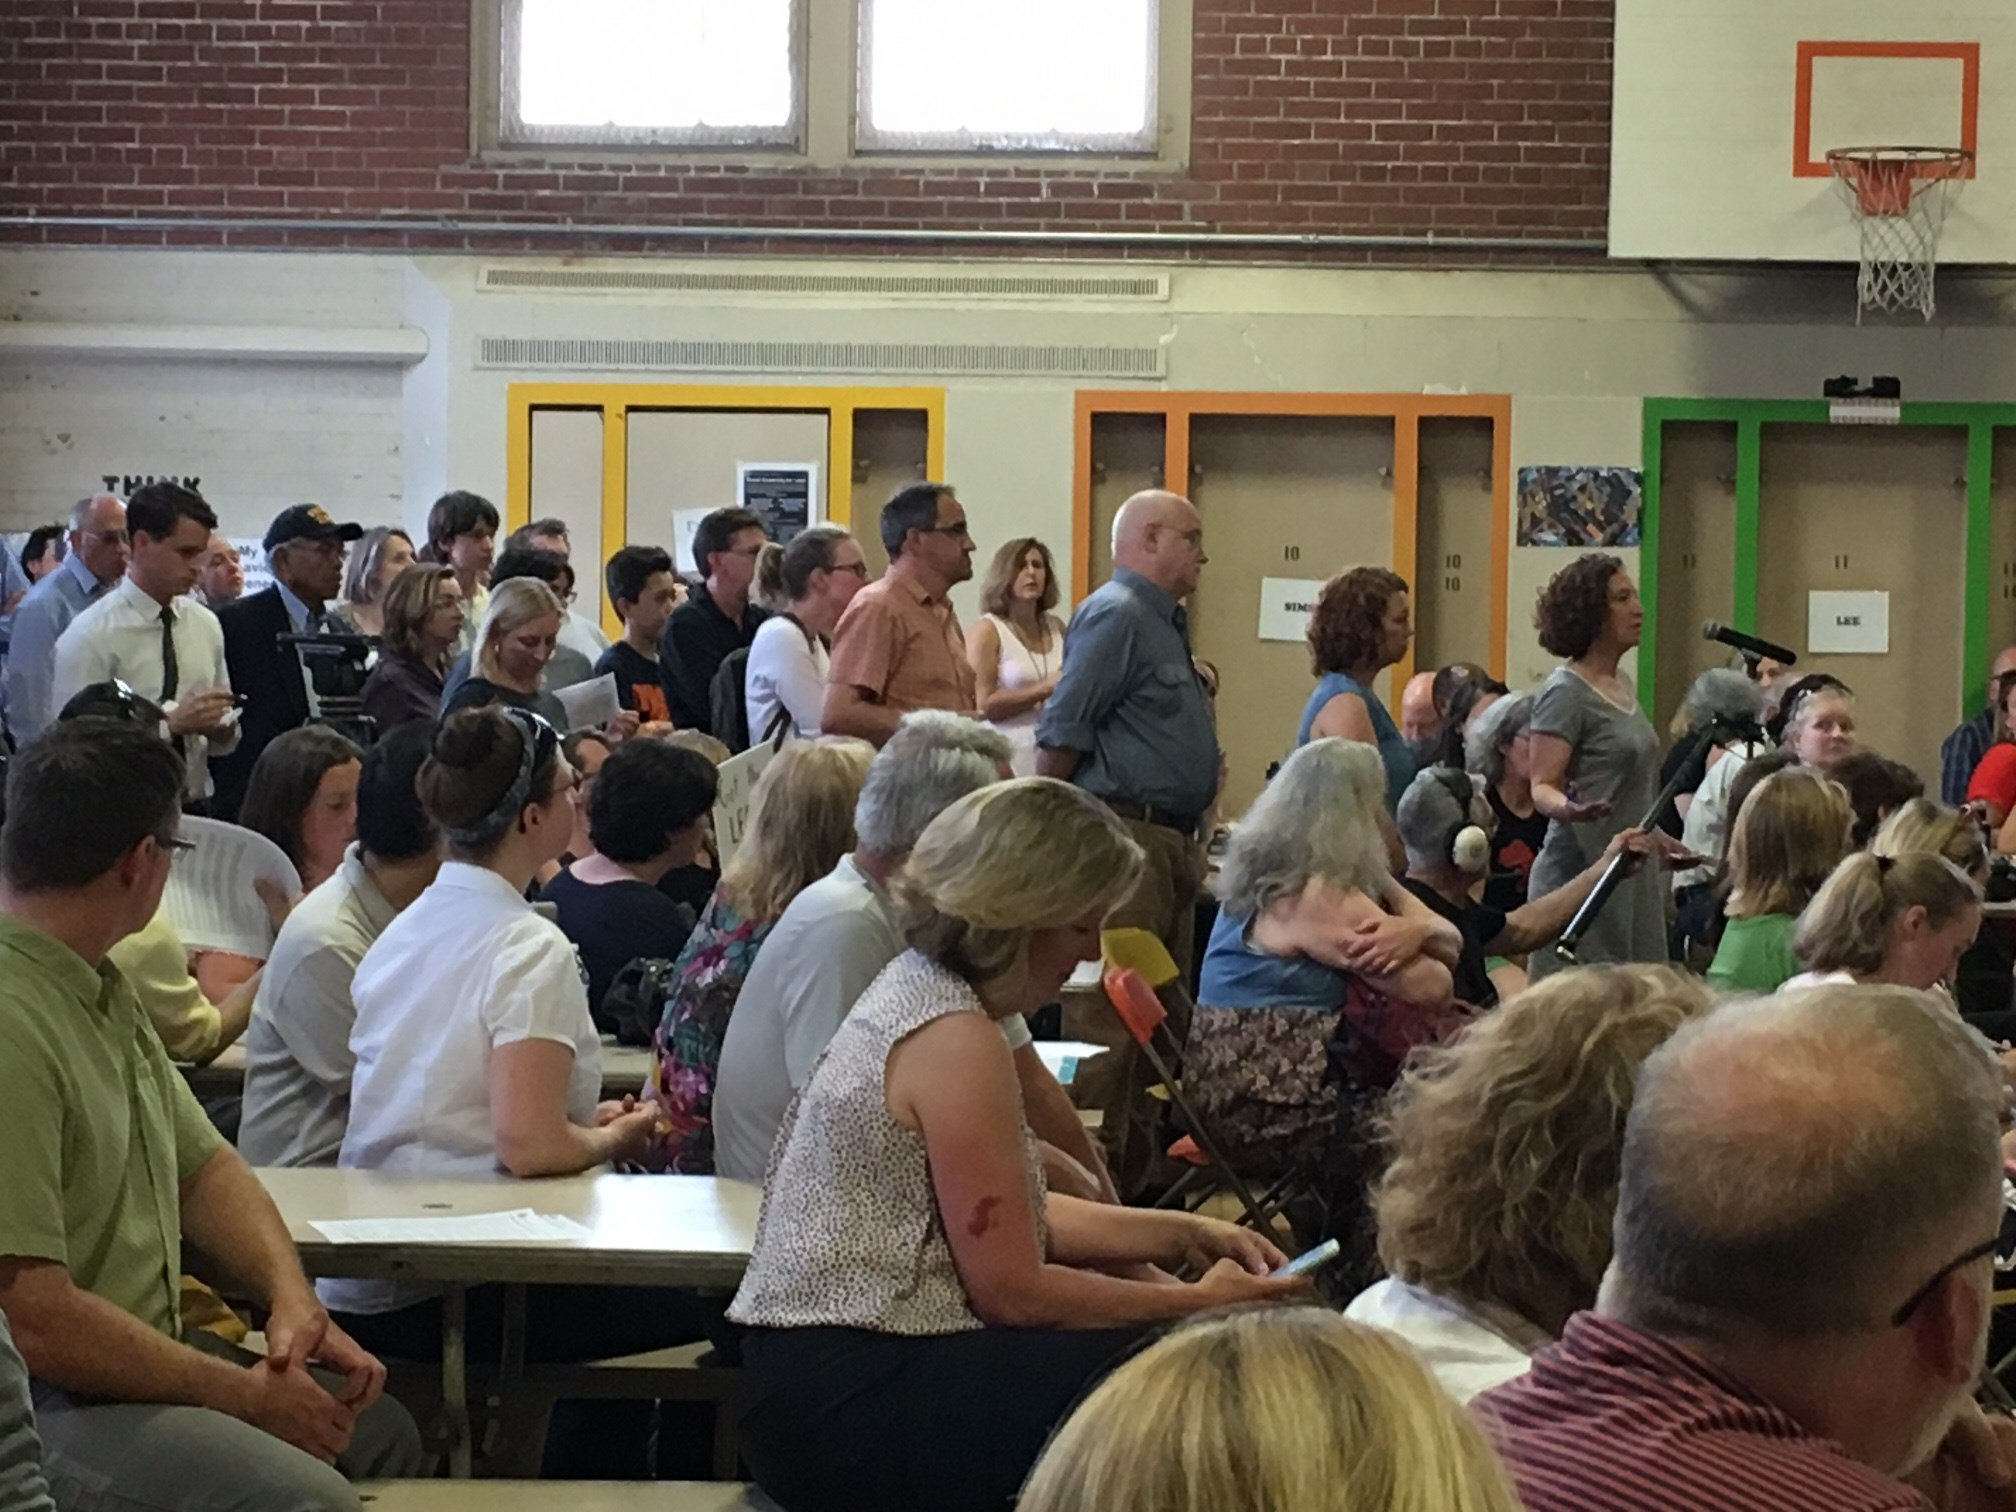 The crowd at Wednesday's community meeting over lead in the school drinking water. (KPTV)